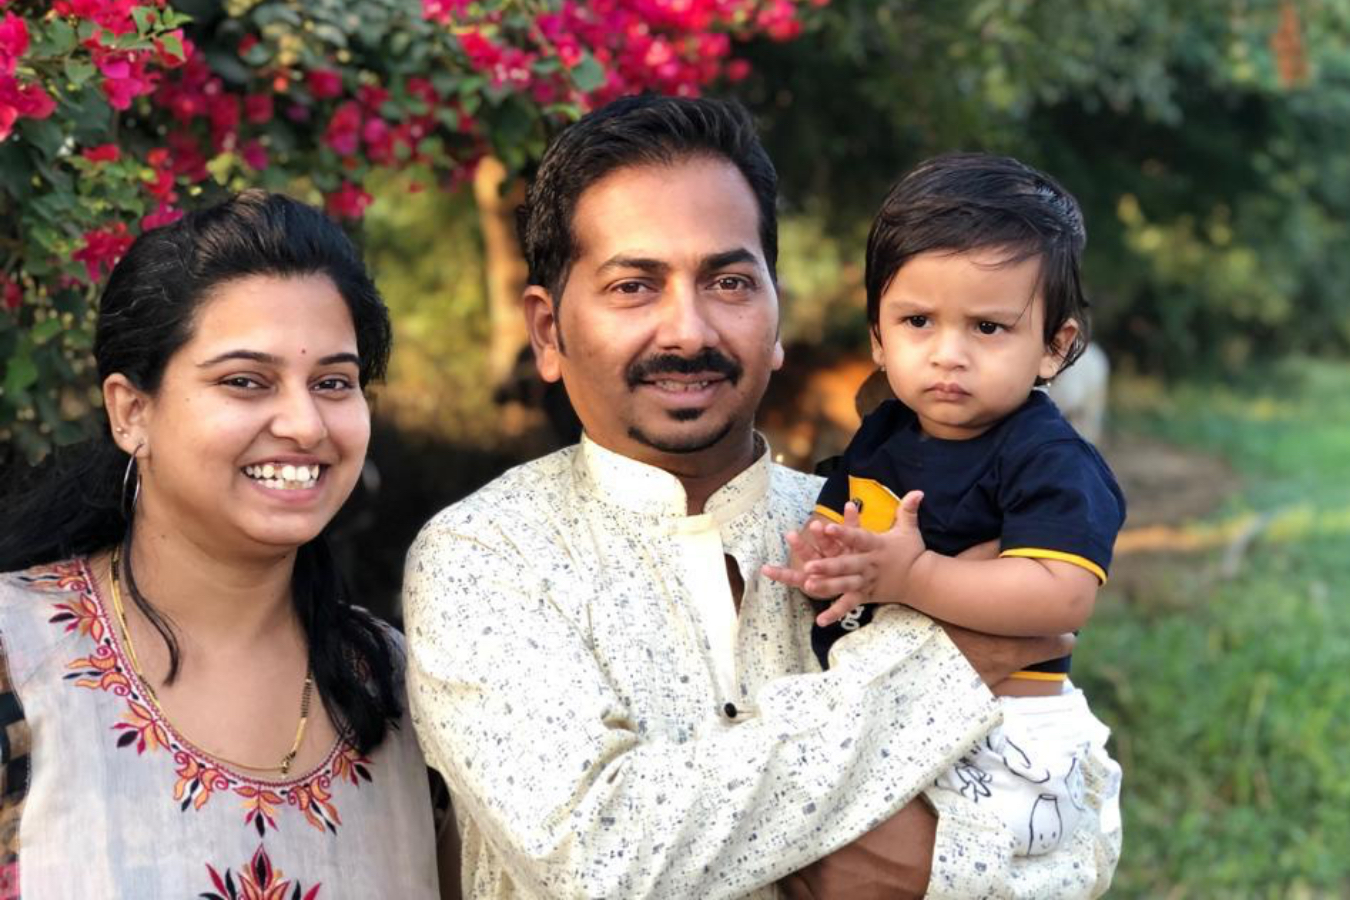 Client Anagha & Kshitij with their Child